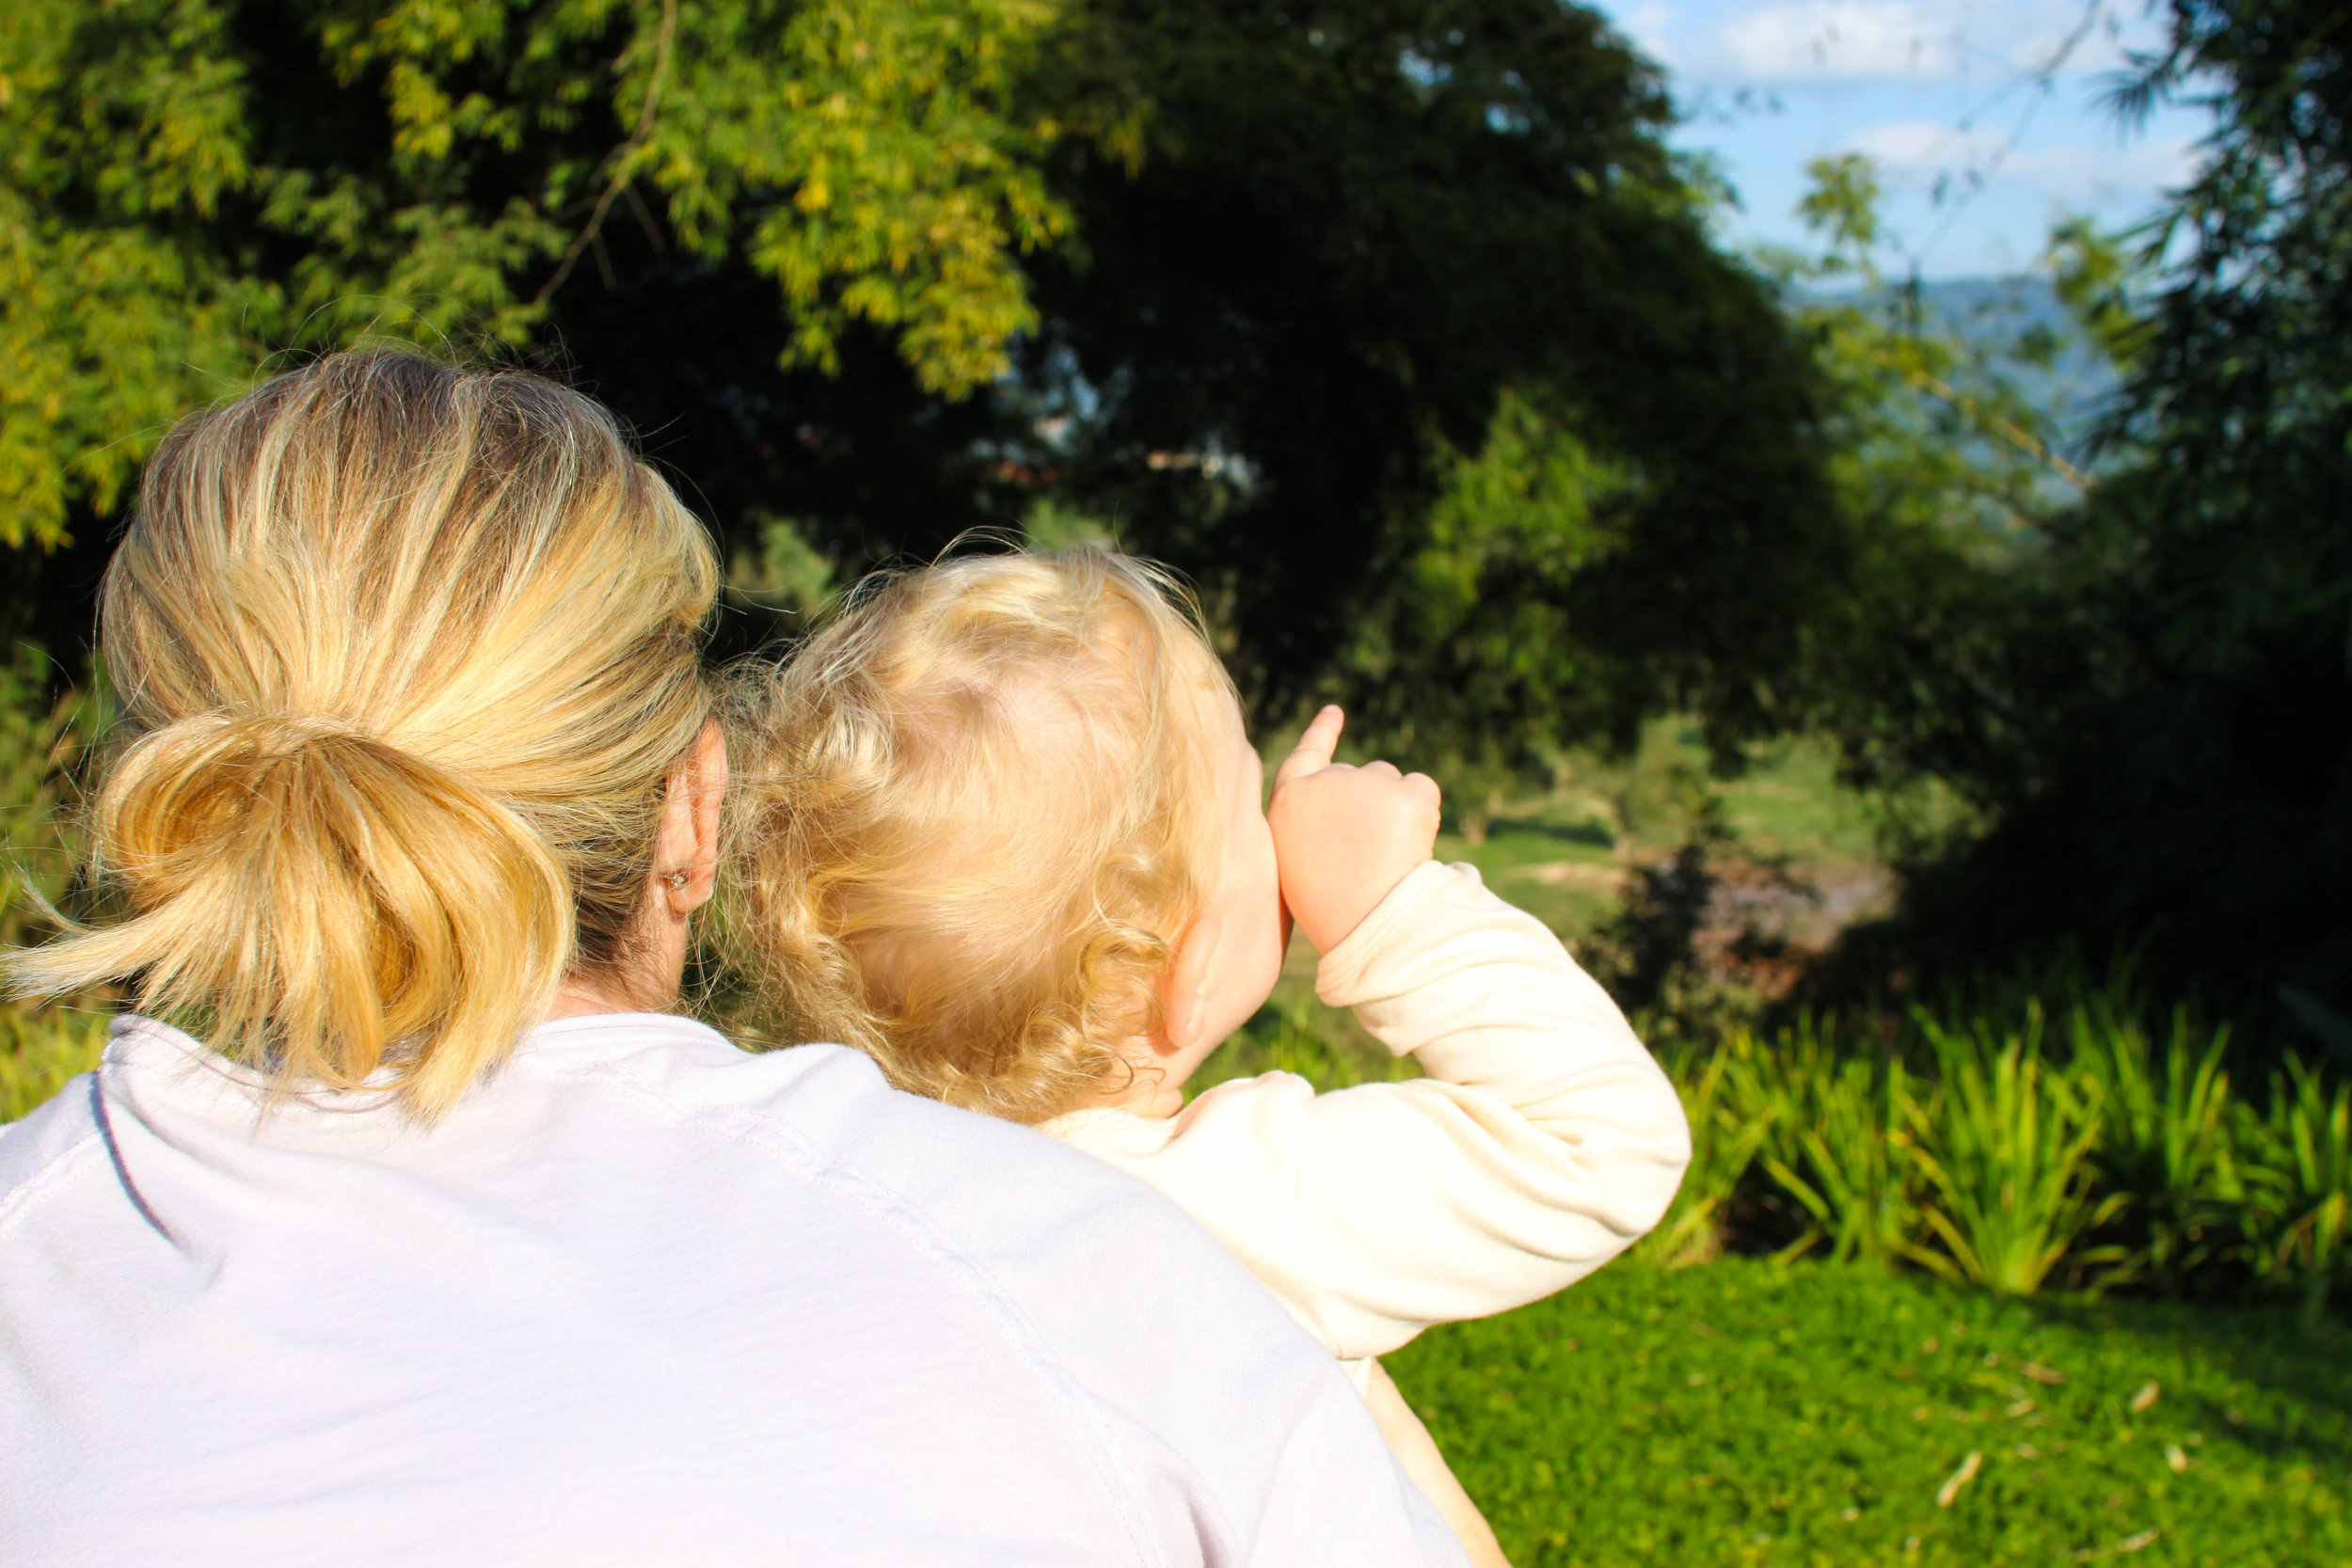 Spotting elephants in the distance at the Anantara Golden Triangle